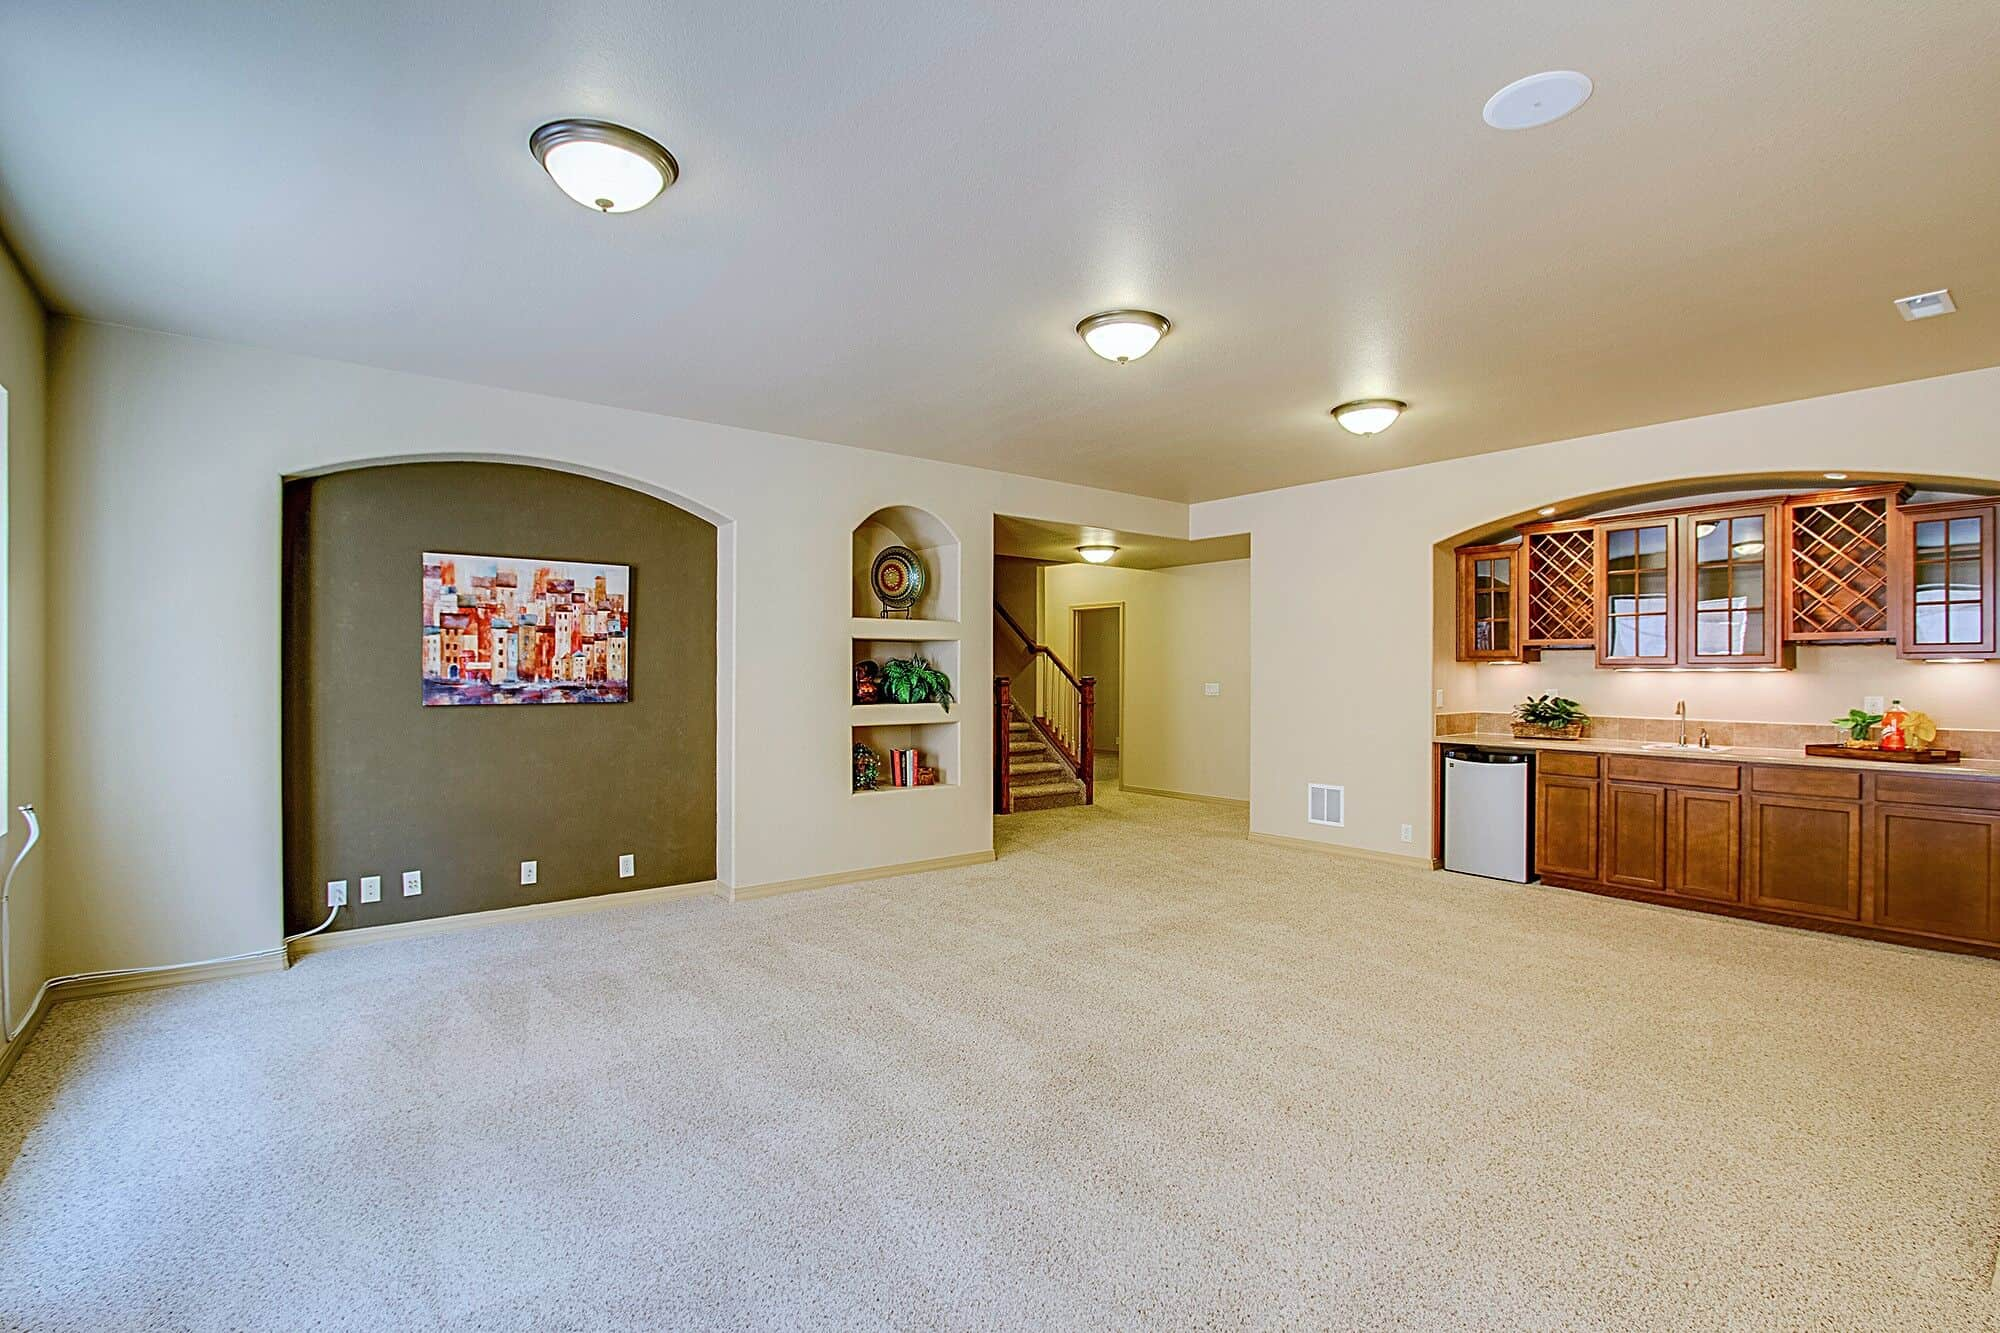 Basement Family Room with Wet Bar